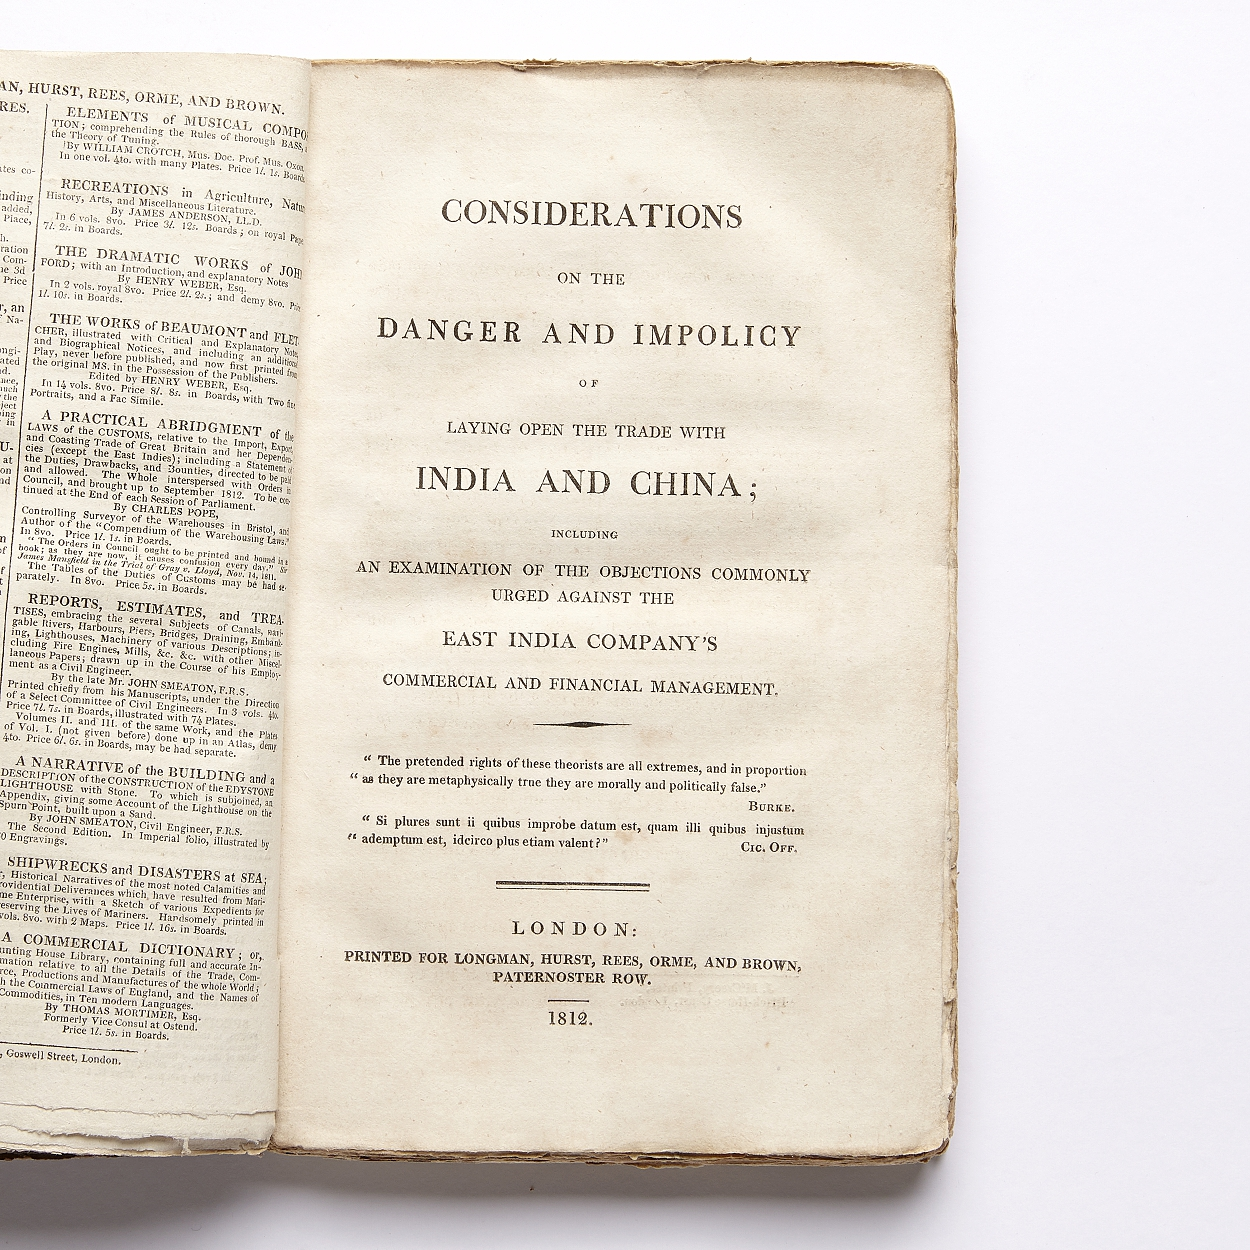 The East India Company and trade with India/China